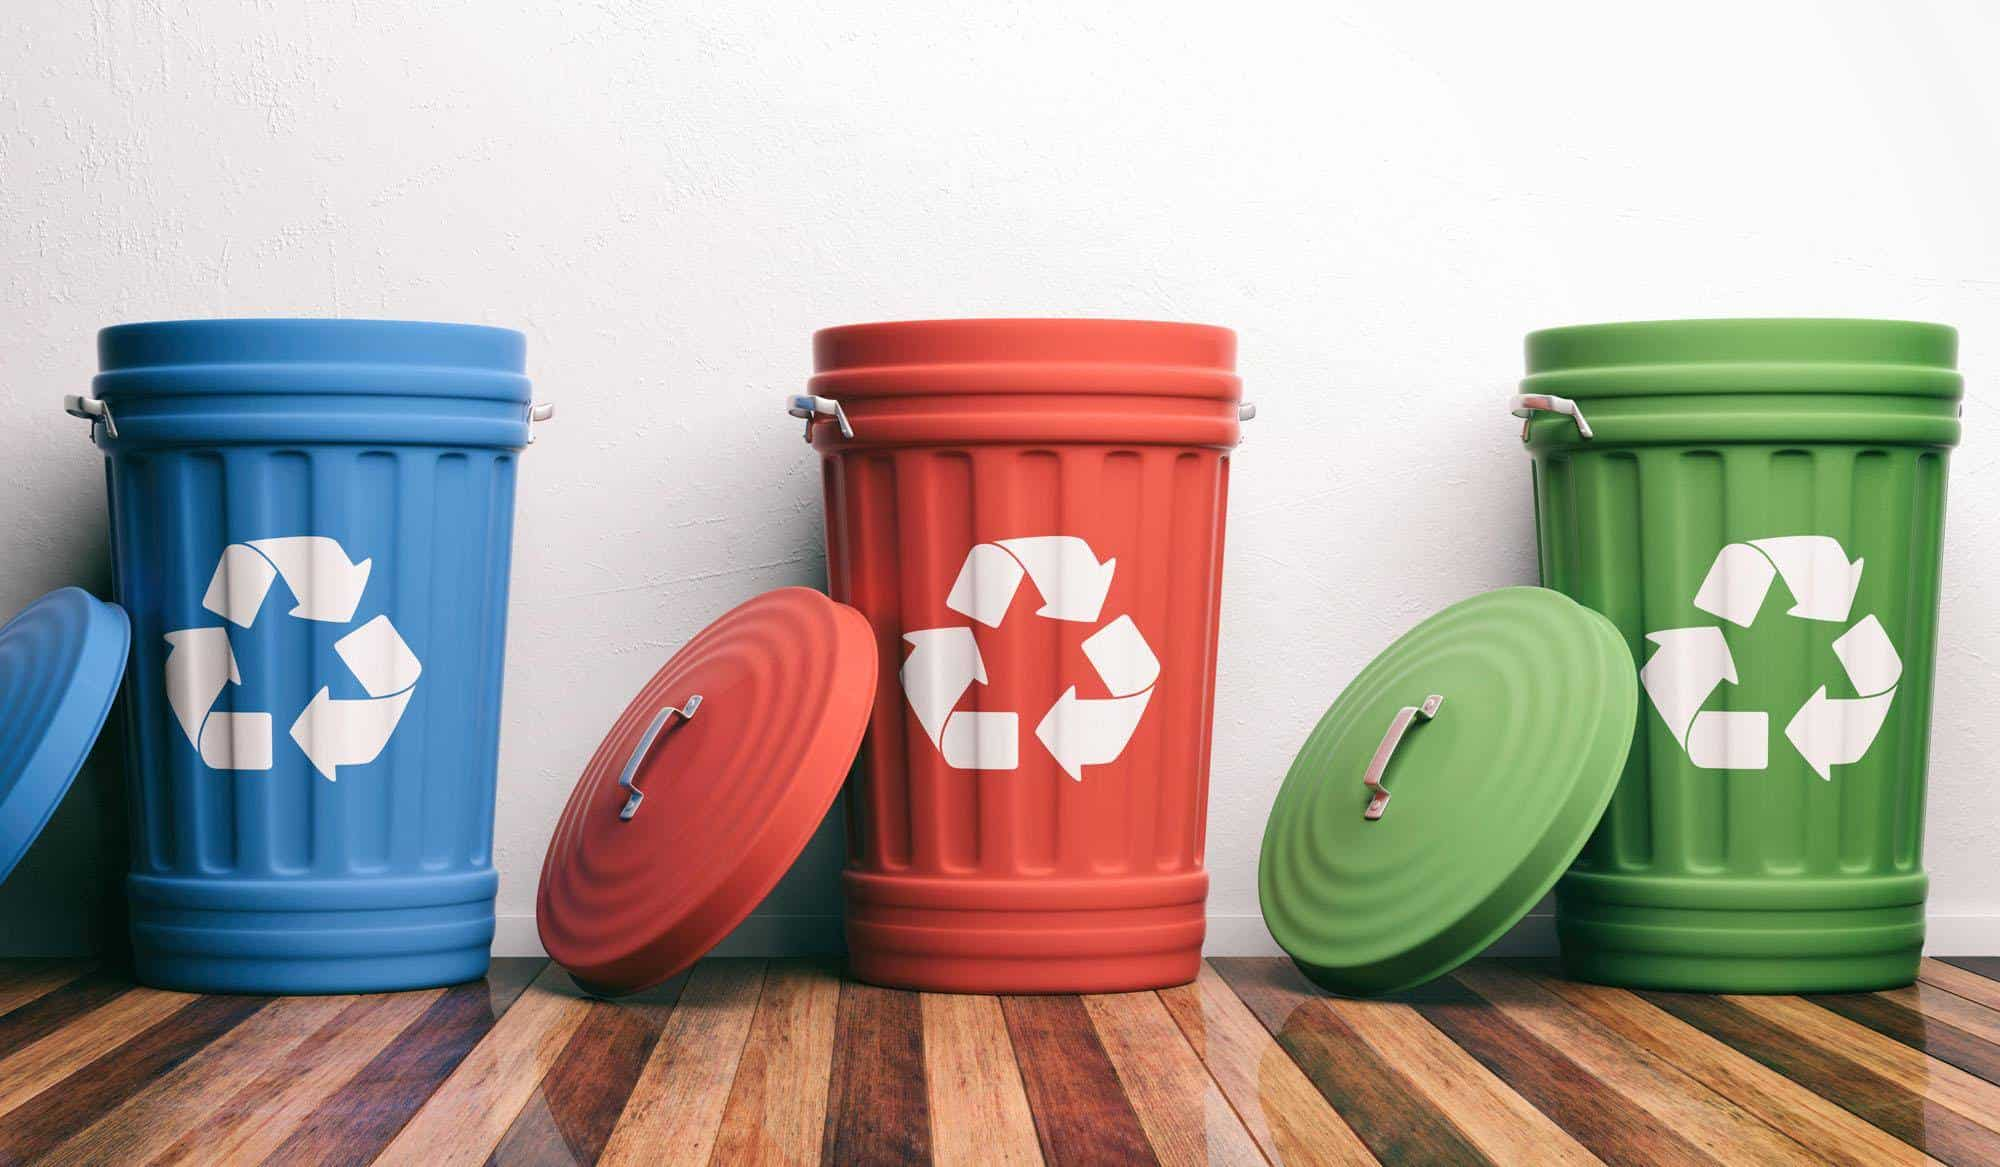 Recycling bins in Singapore